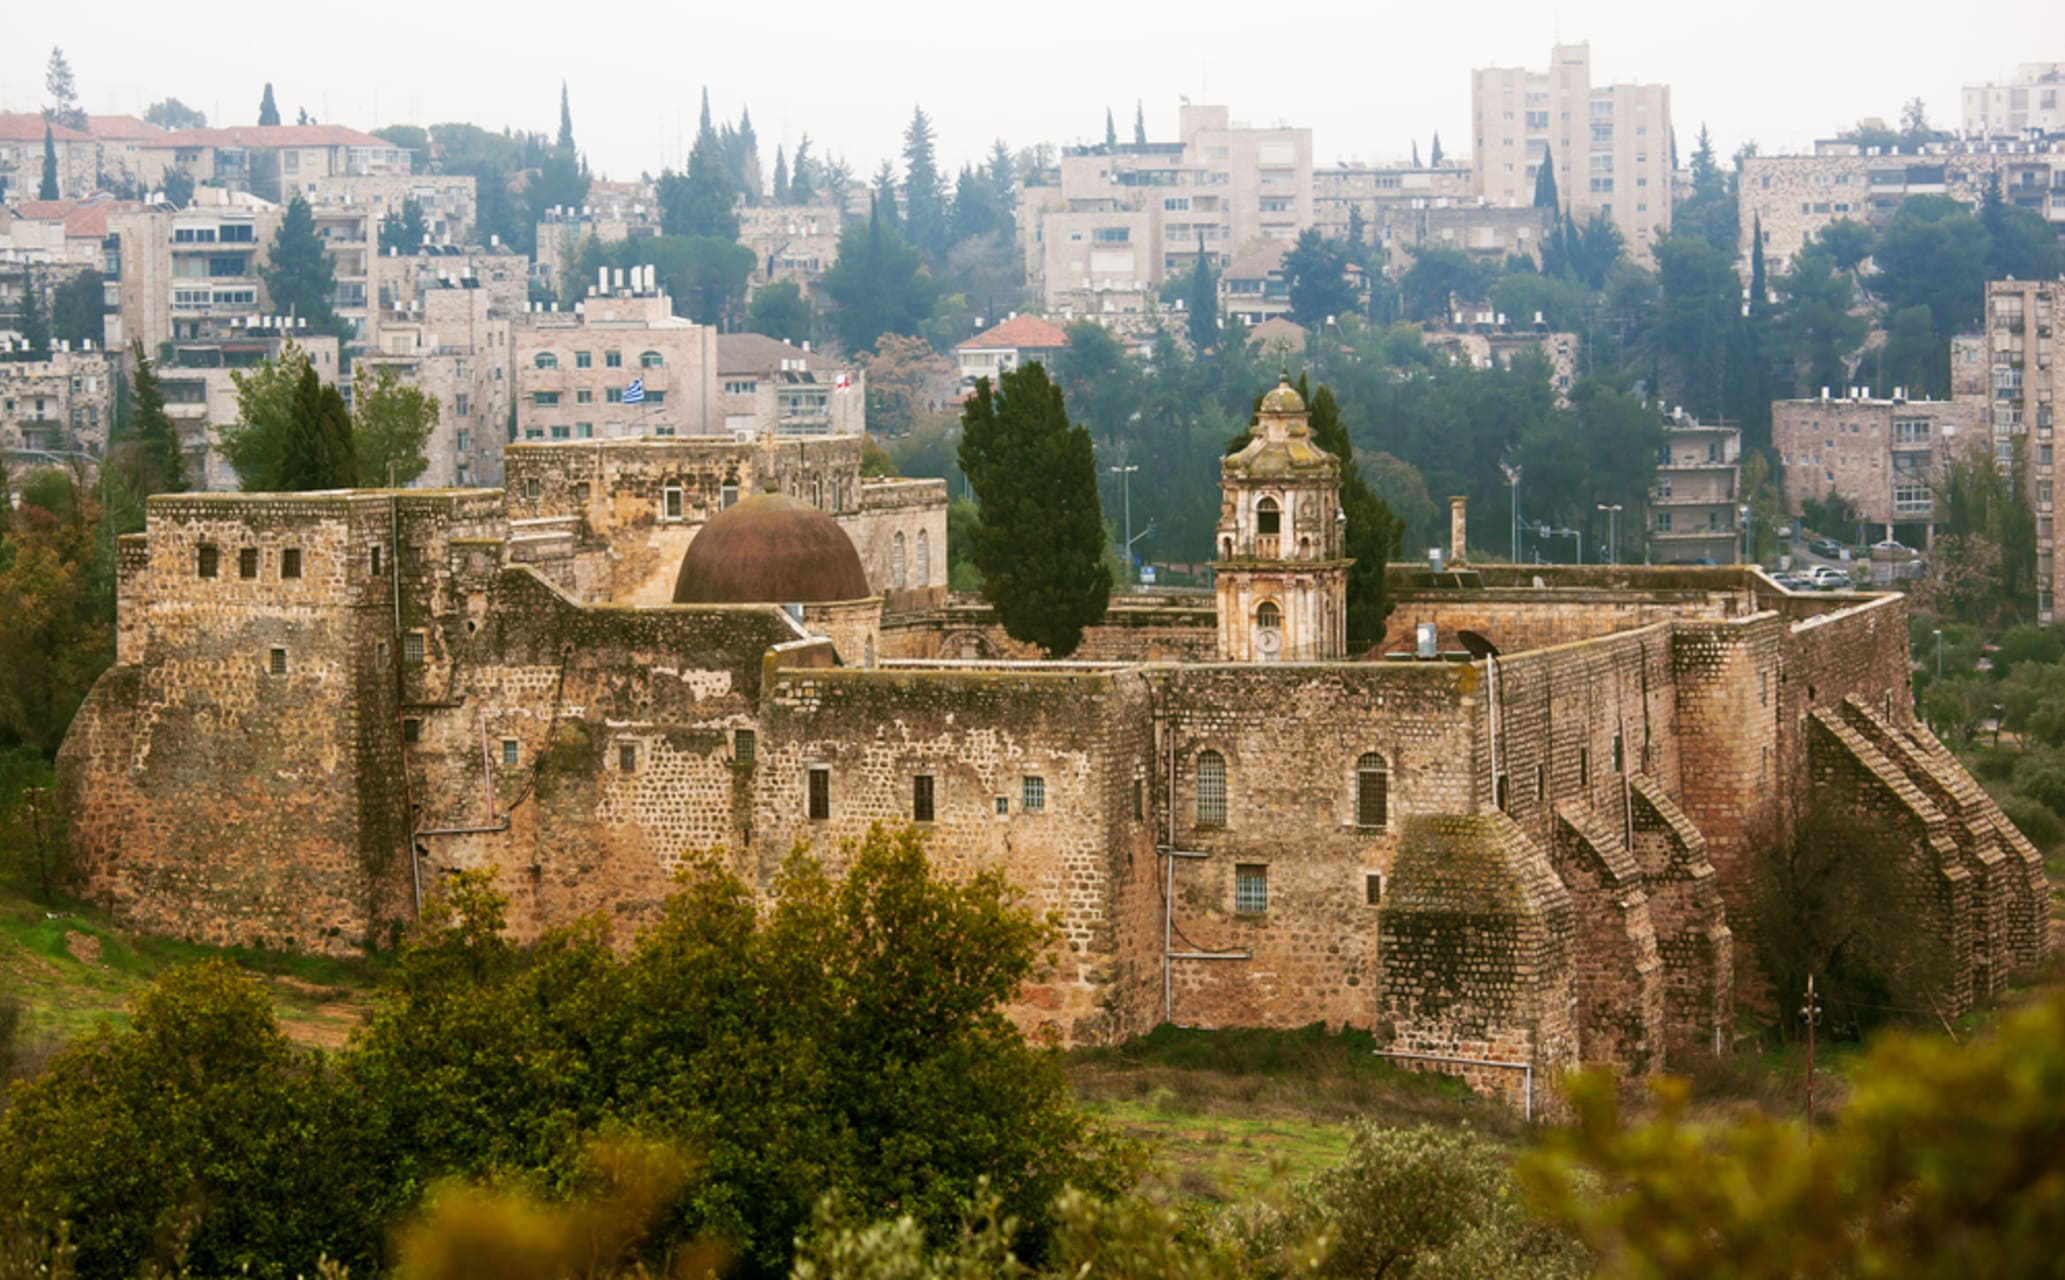 Jerusalem - From the Israeli Parliament to the Valley of the Cross